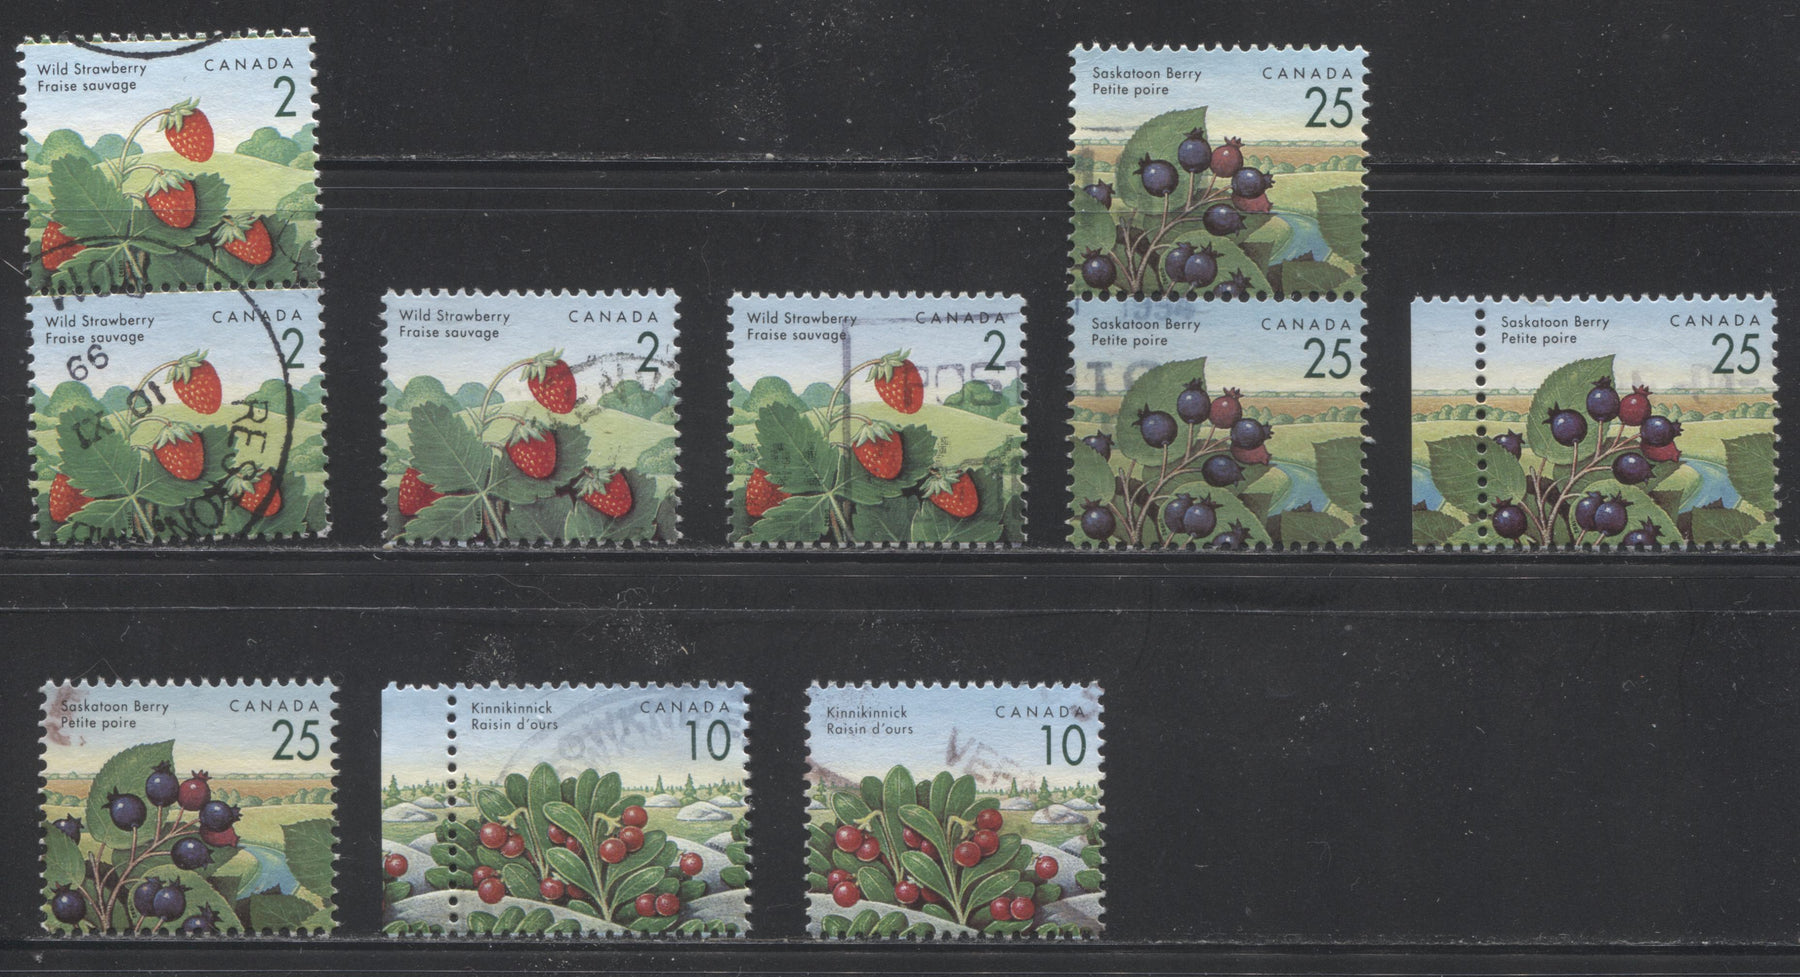 Canada #1350v/1355vii 2c Wild Strawberry, 10c Kinnikinnick & 25c Saskatoon Berry, 1991-1998 Fruit & Flag Definitive Issue, VF Used Examples, Different Printings, Each Showing Different Constant Varieties